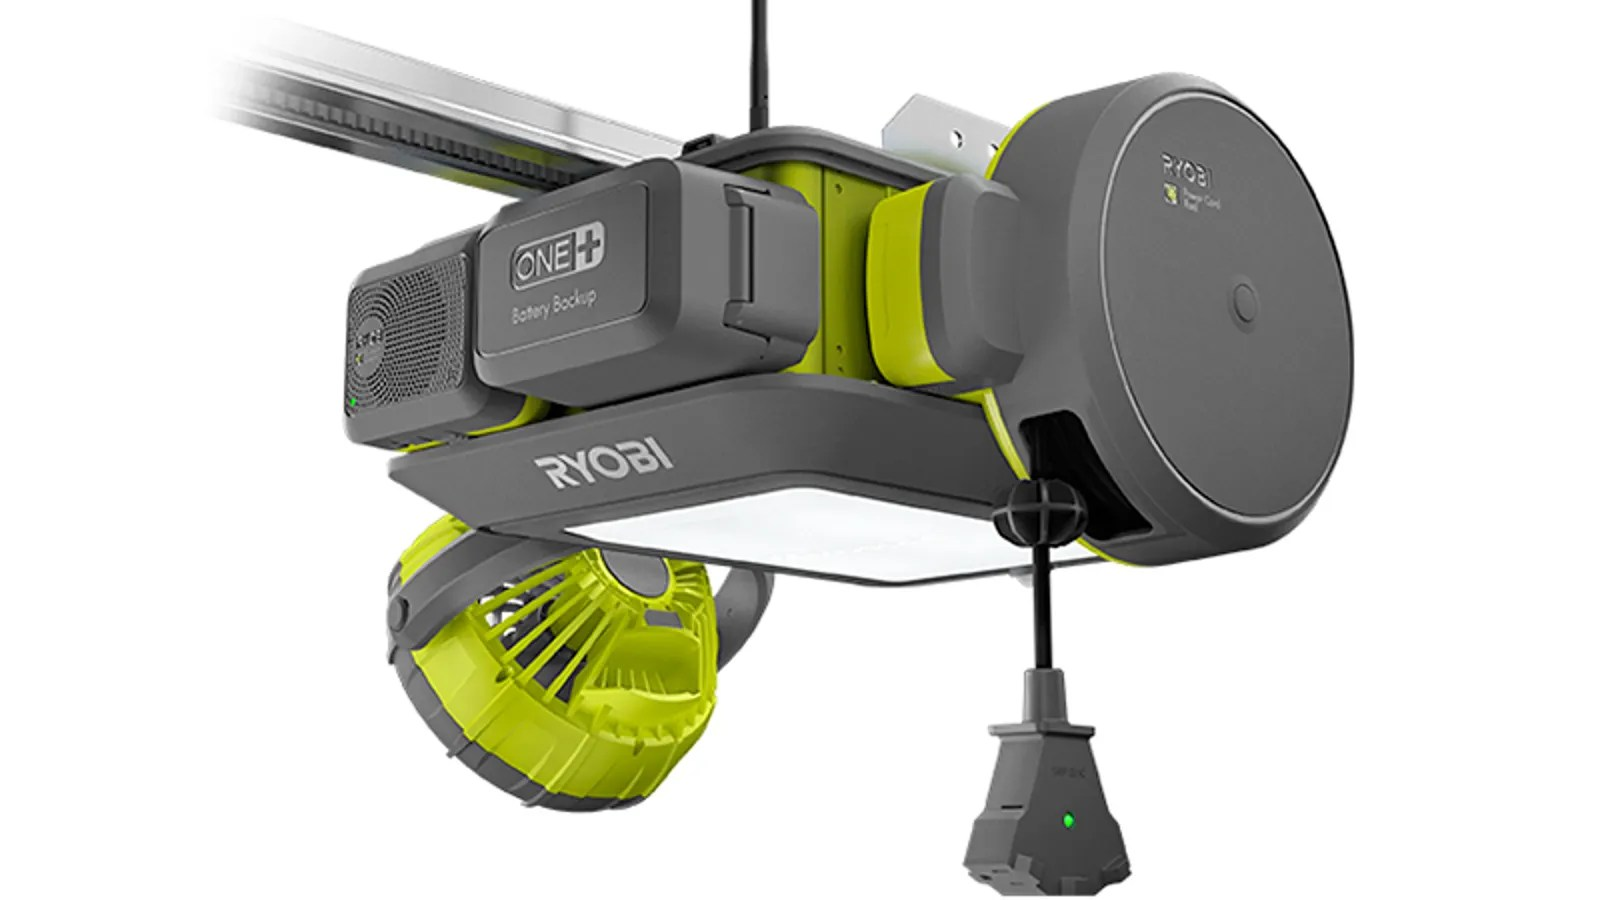 Ryobi Garage Door Fan This Modular Garage Door Opener Has More Features Than Your Car